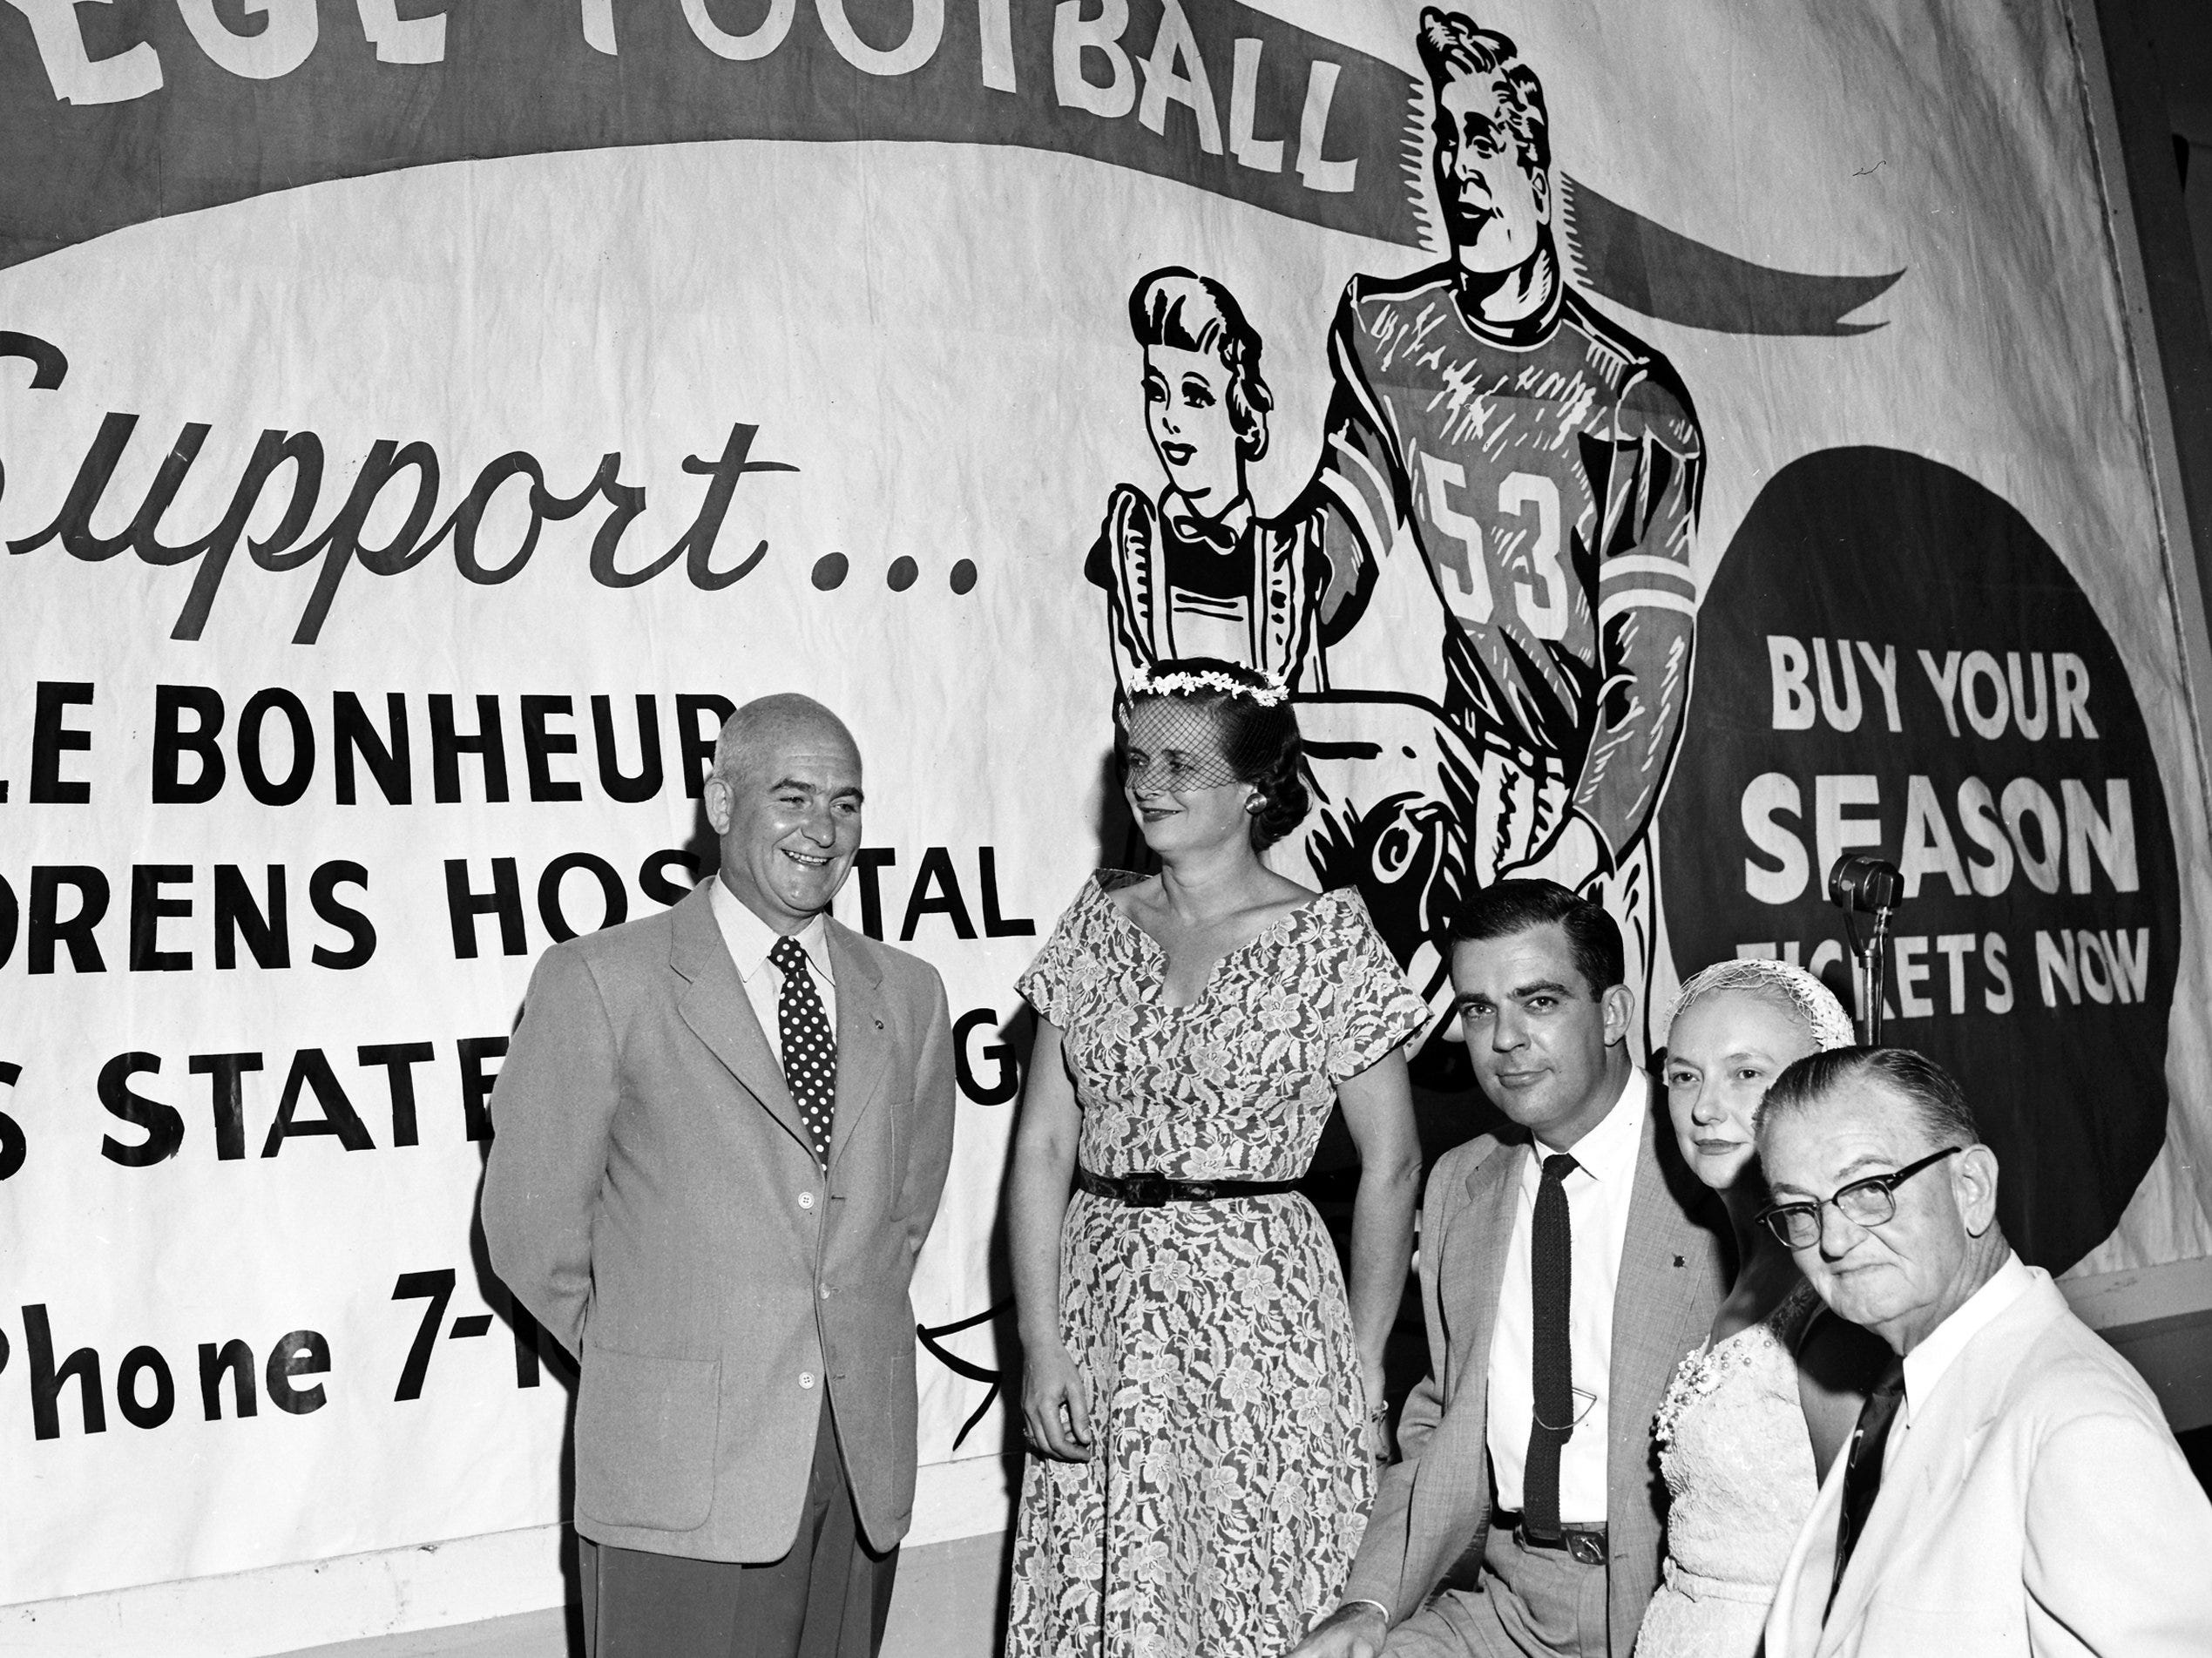 Memphis State enthusiasts dined on 1 Sep 1953 and talked up season ticket sales for the forthcoming football season, pledging to intensify their sales campaign in the remaining two weeks.  Leaders were (From Left) Dick Trippeer, member of the advisory committee of Greater Memphis State, Inc.; Mrs. Jerry Porter, sales chairman for Le Bonheur; Thomas E. Samuels, president of Greater Memphis State; Mrs. Frank M. Weathersby, president of Le Bonheur and Lee McCourt, advisory committeeman.